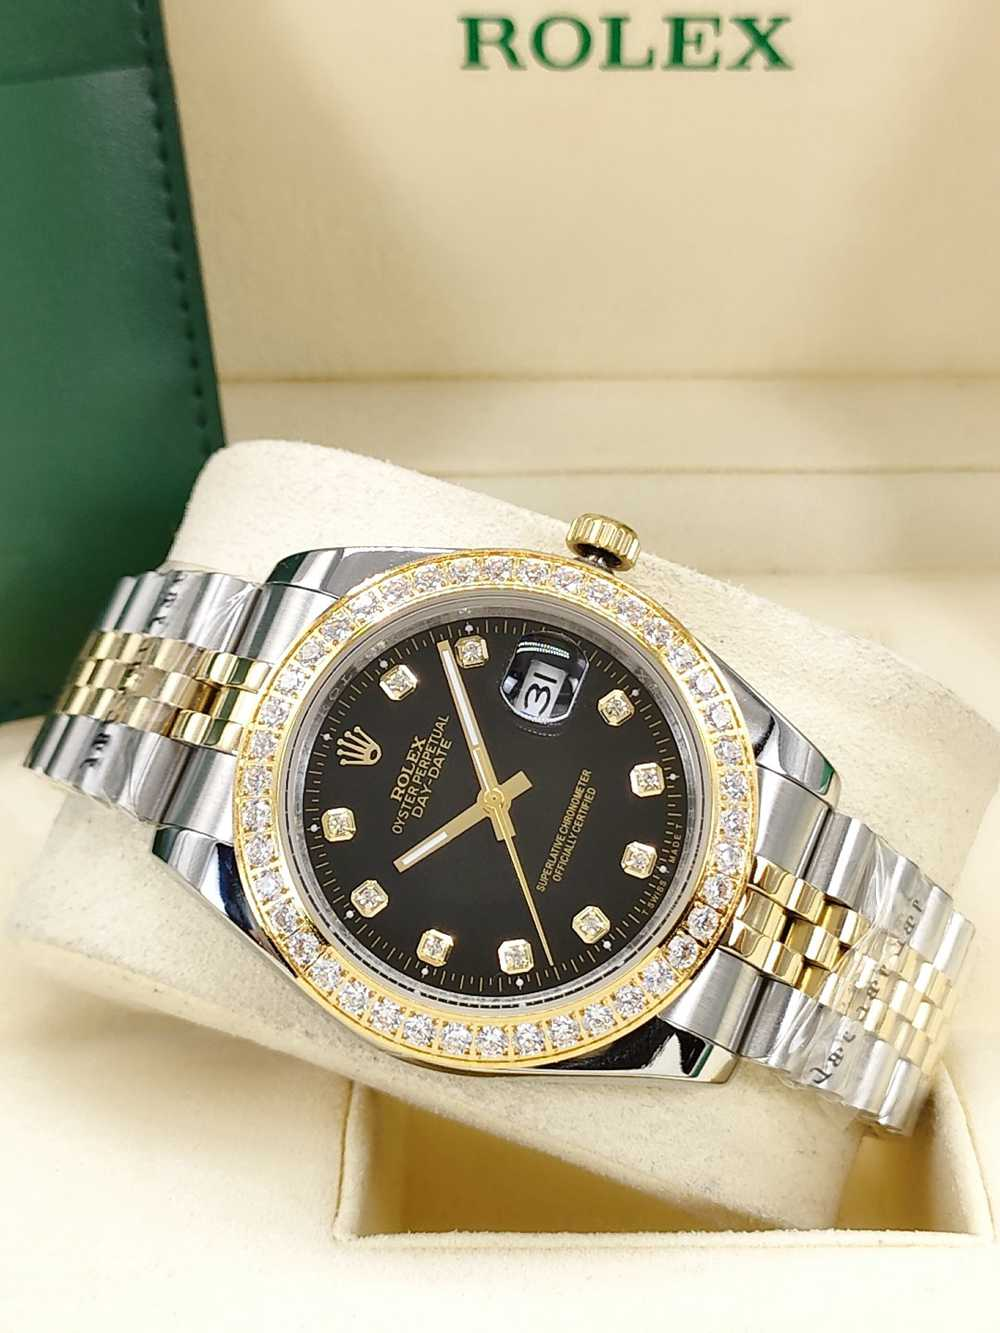 Datejust 41mm diamonds bezel two tone gold stainless steel case black dial jubilee band AAA S